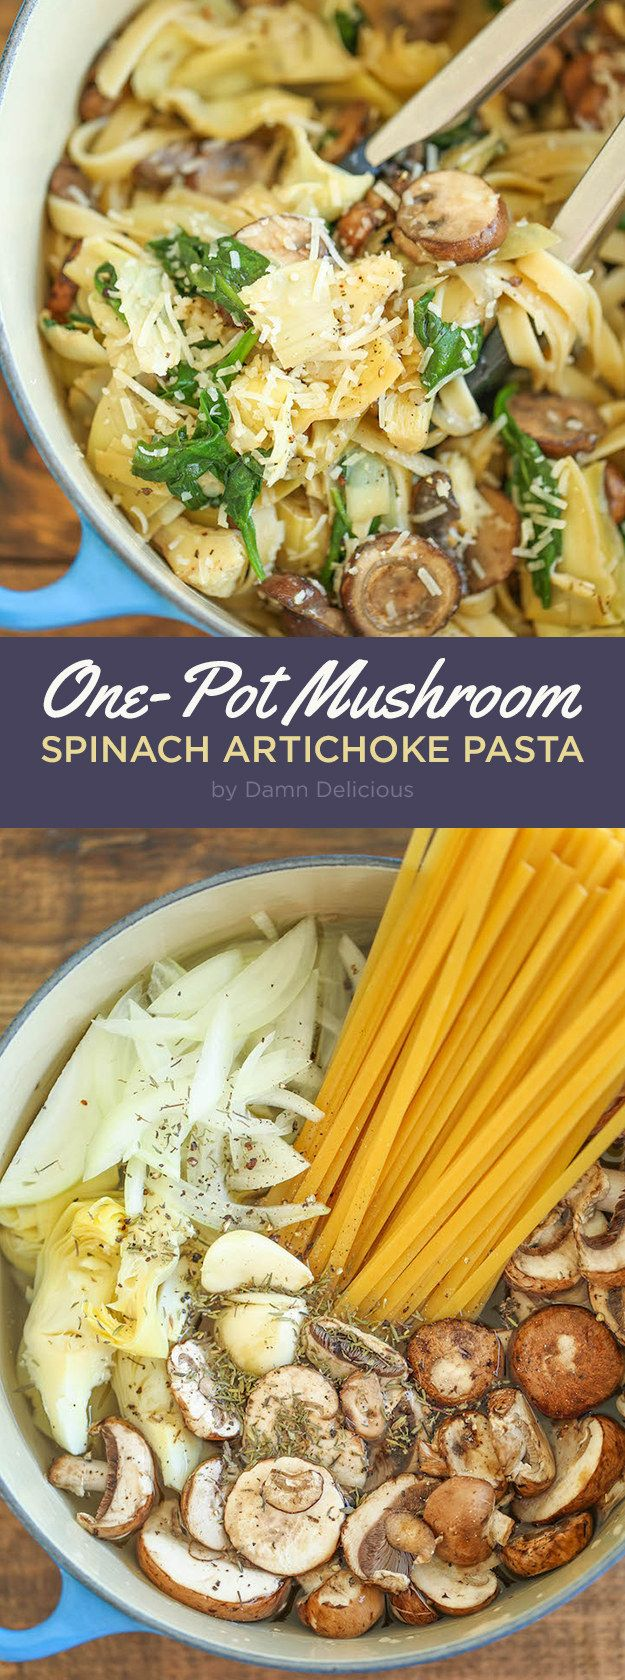 One Pot Mushroom Spinach Artichoke Pasta | Here Are 7 Delicious Dinners To Eat This Week